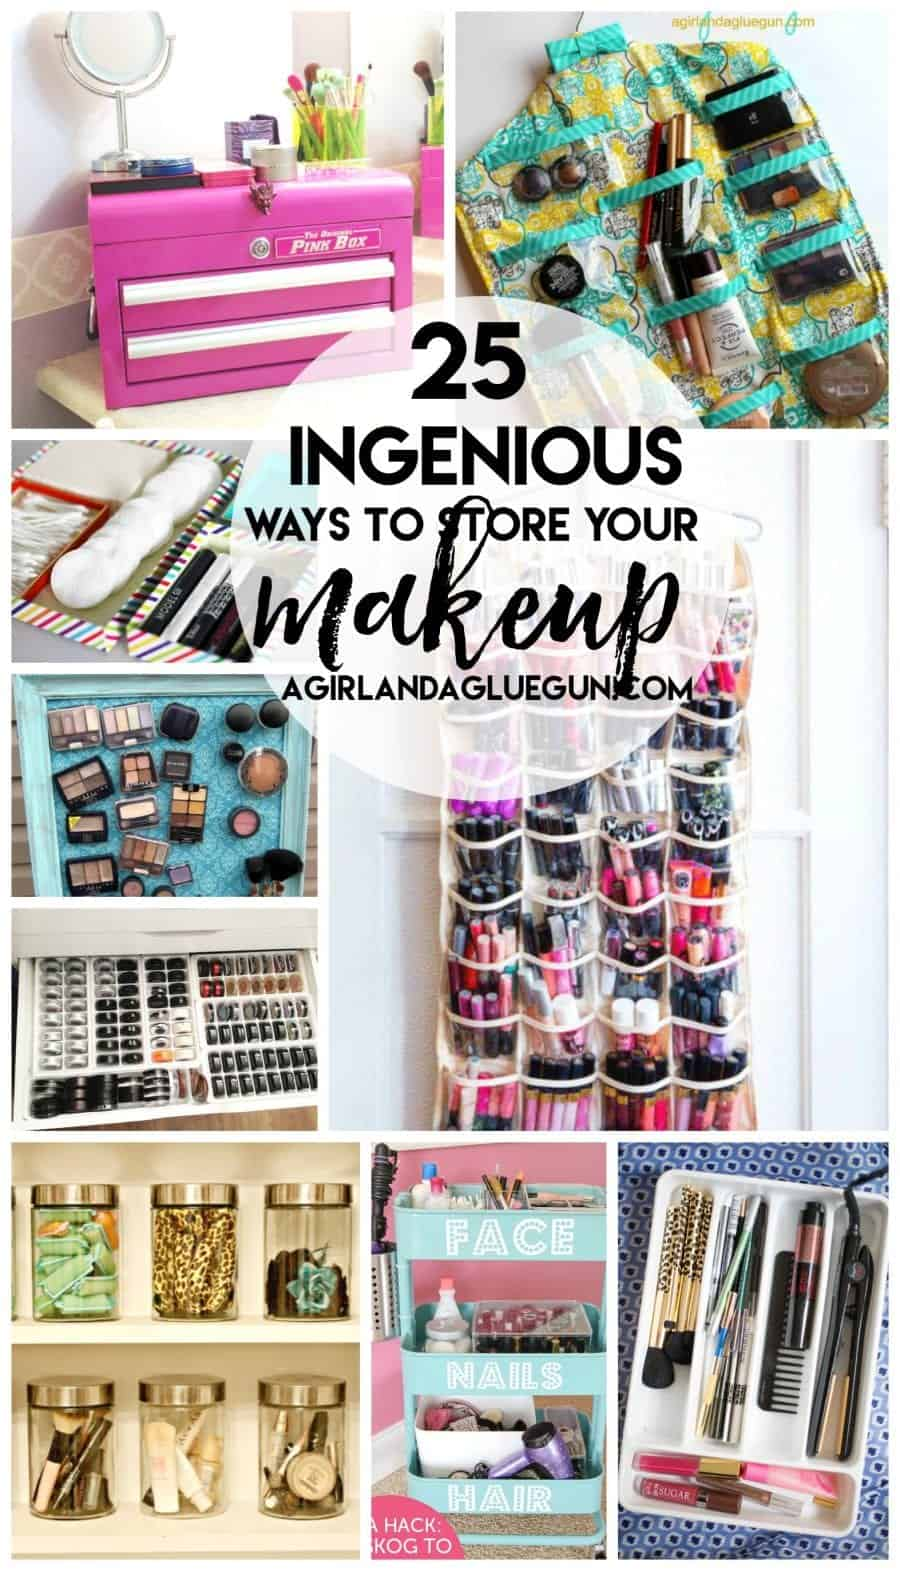 25-ingenious-ways-to-store-your-makeup